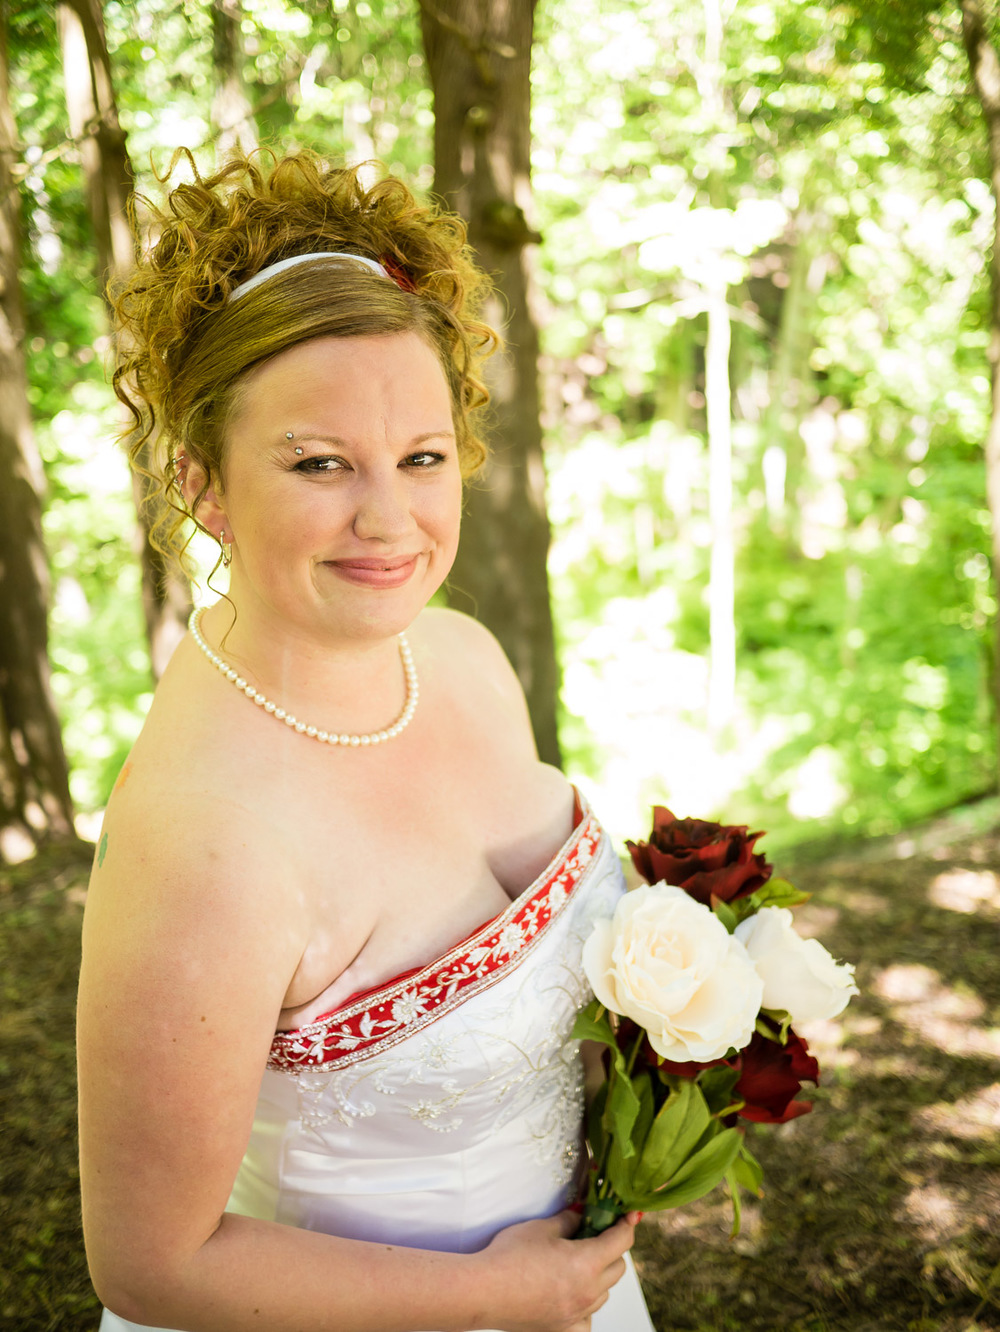 LauraBrendenWedding-88.jpg